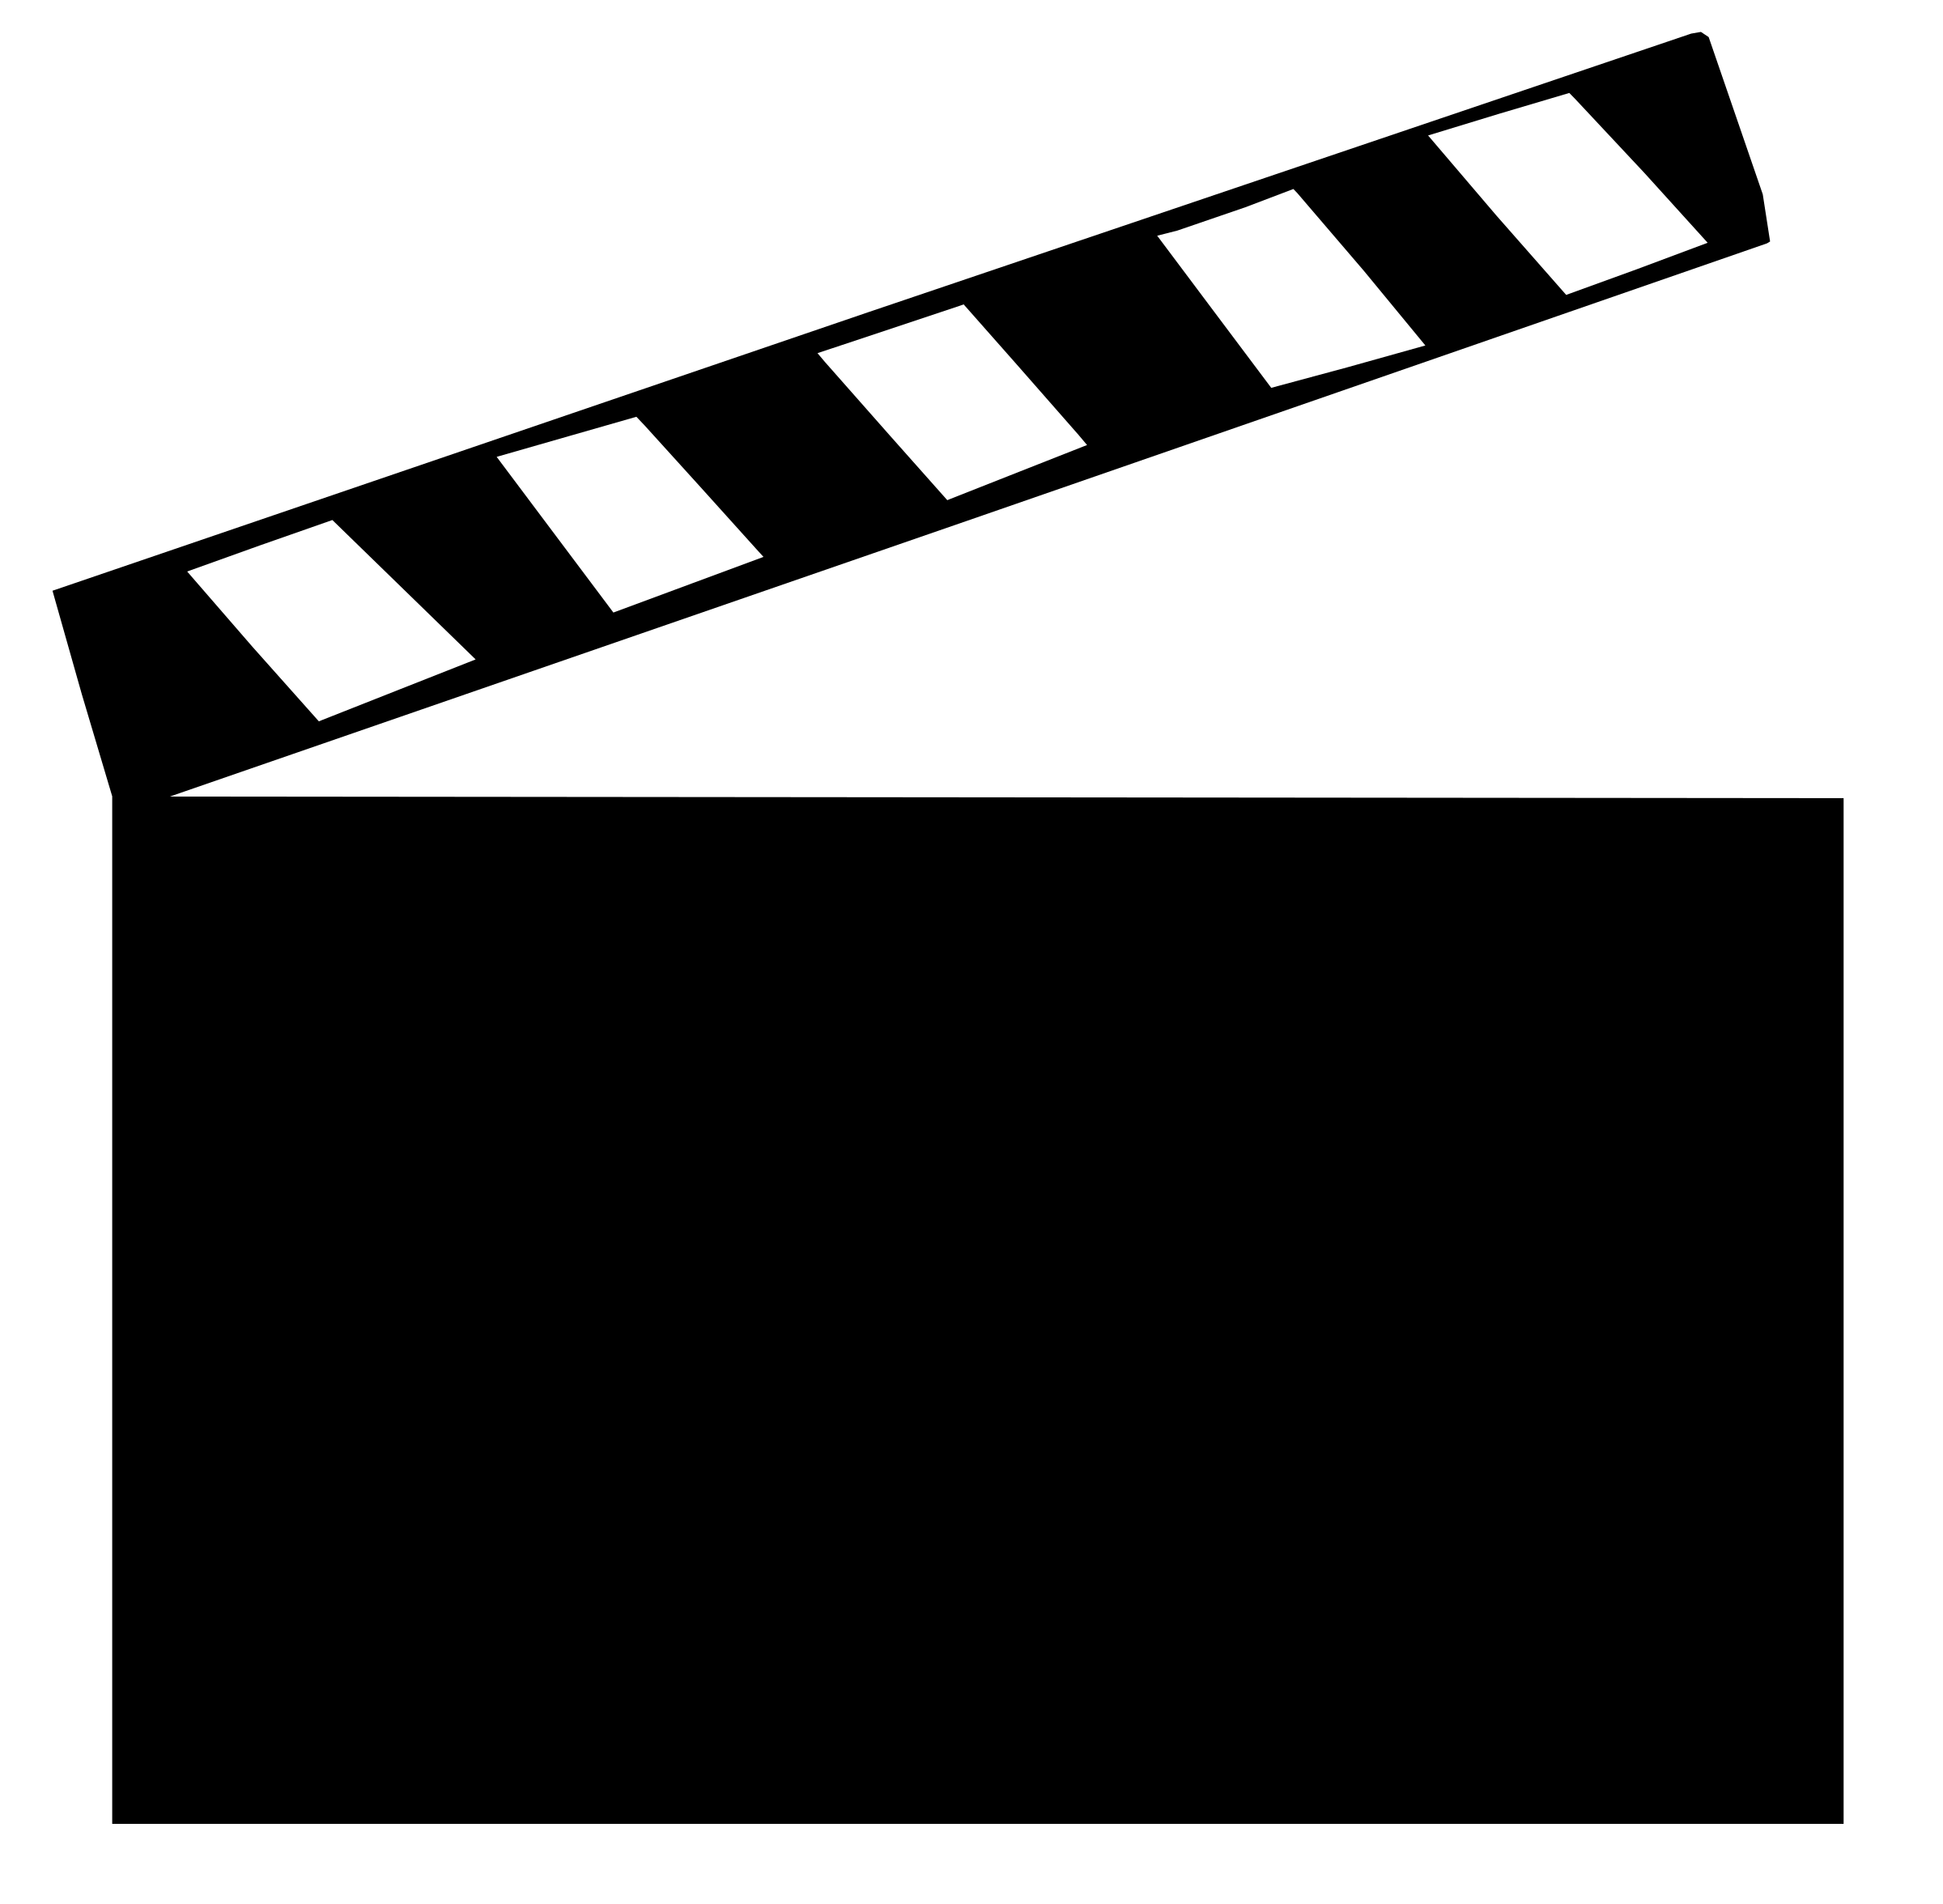 Film clapper png. Board refixed icons free